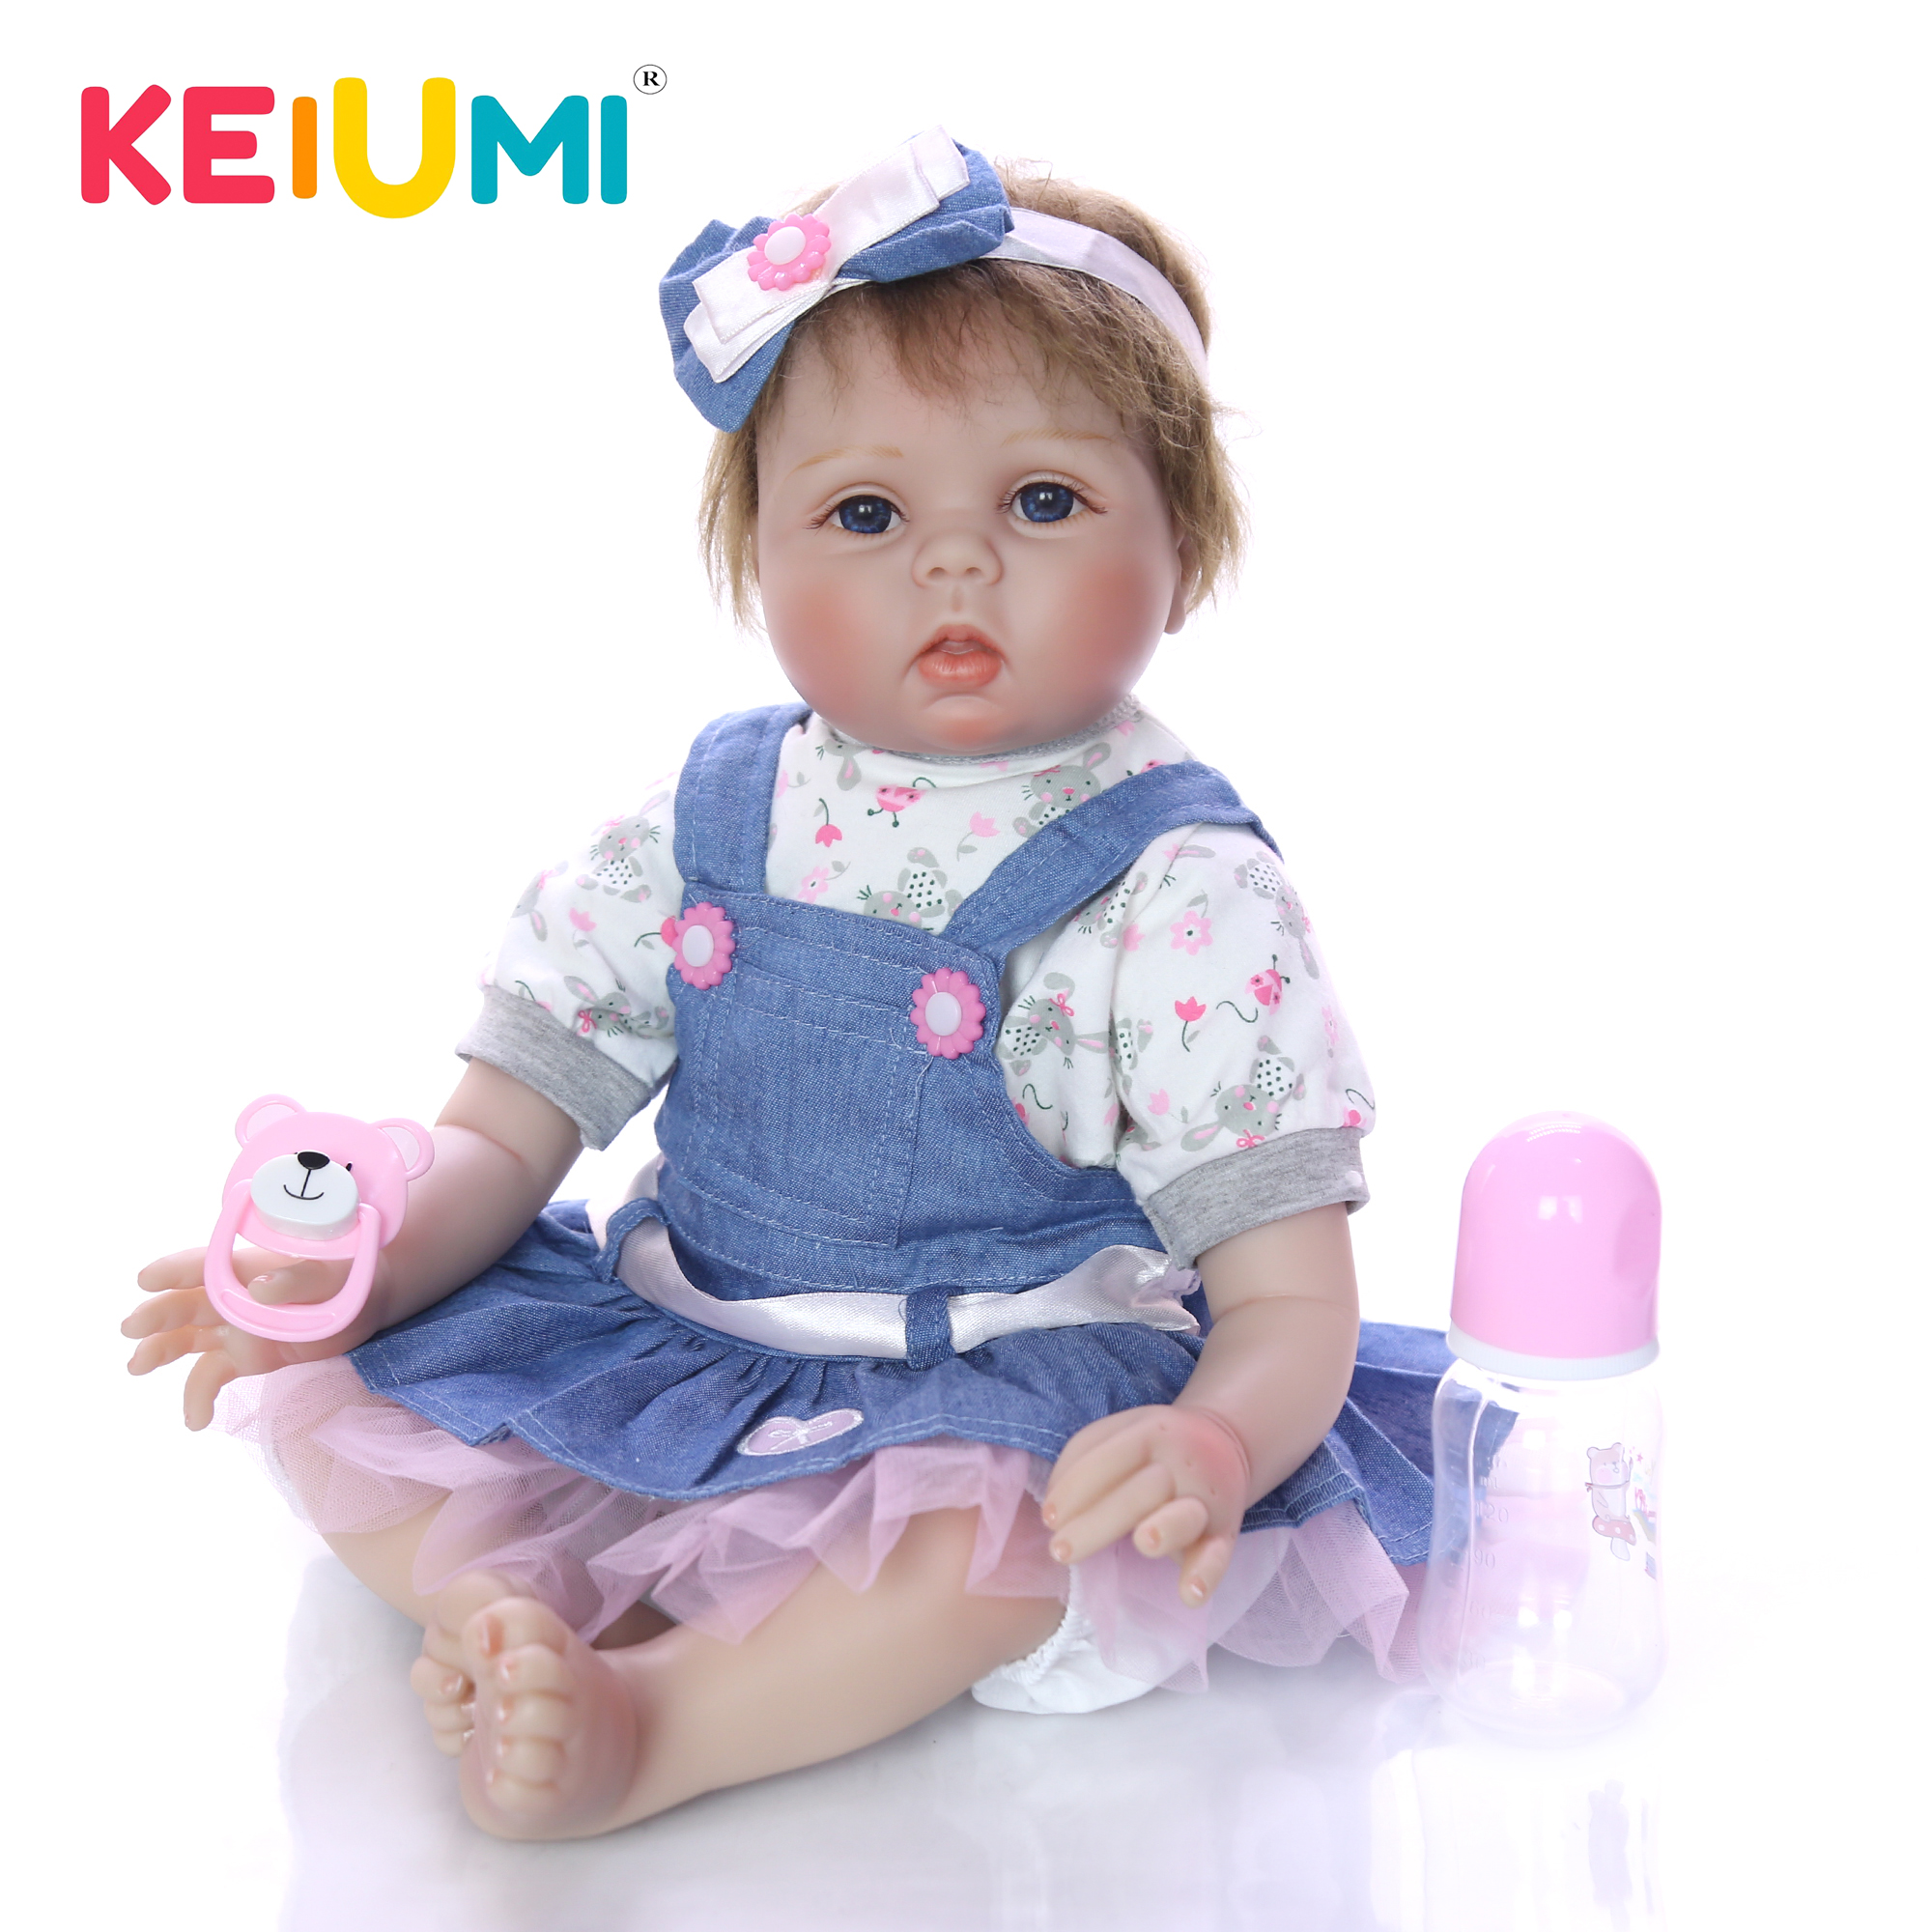 KEIUMI 22 Inch Realistic Reborn Babies Girl Doll Handmade Newborn Doll Wear Denim Skirt Baby Toy